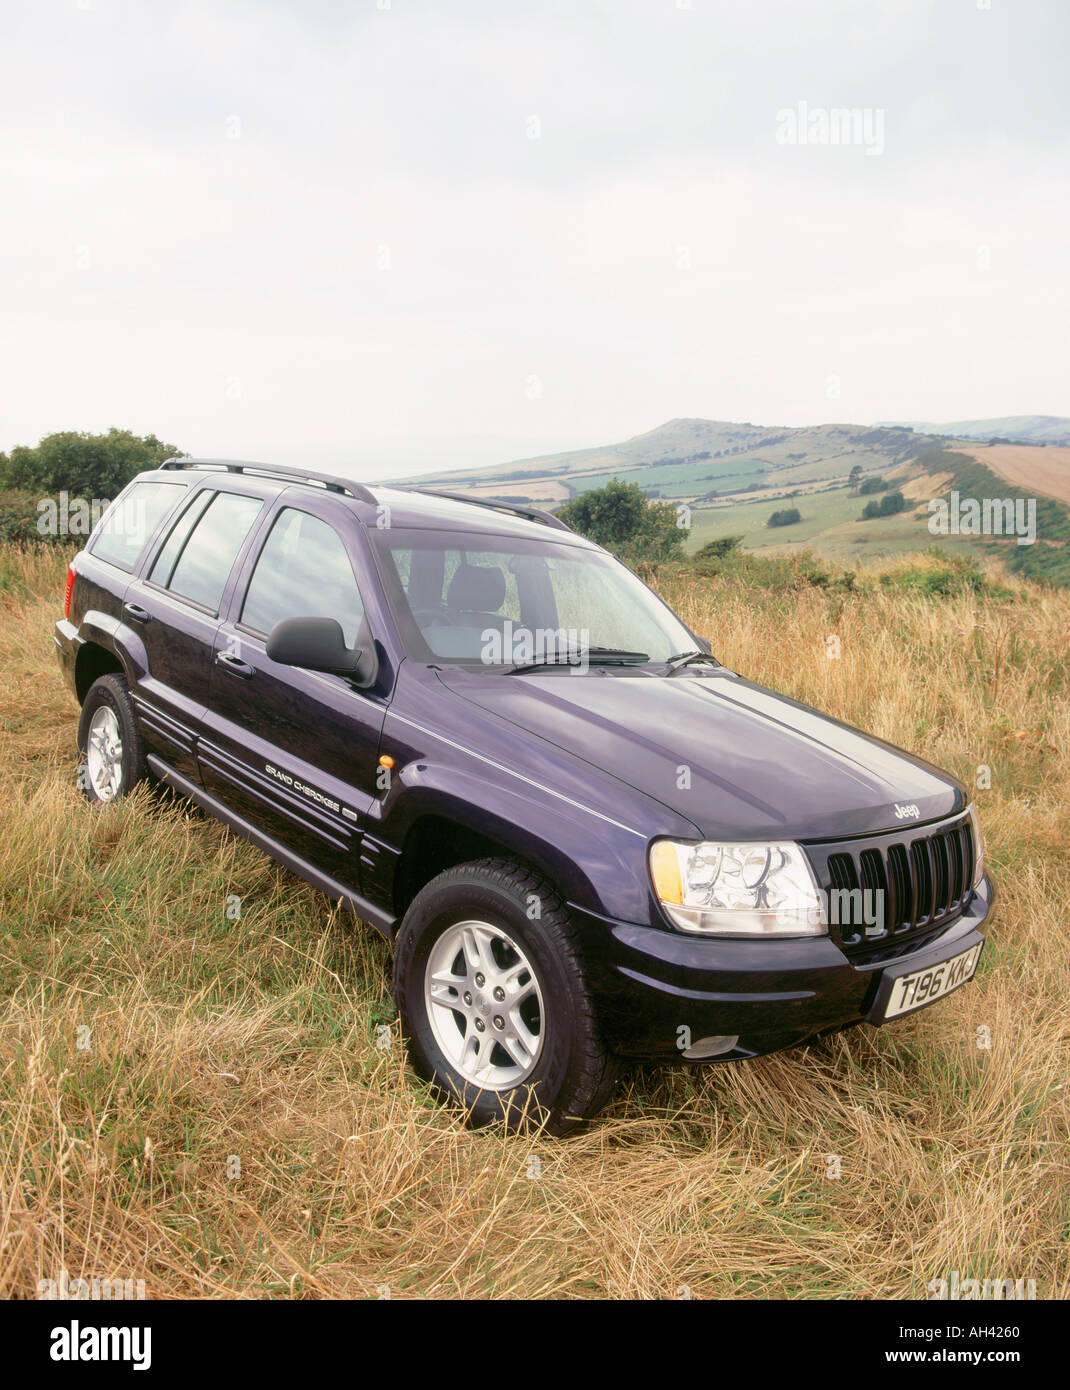 Jeep Grand Cherokee Stock Photos Images 1999 Door Image